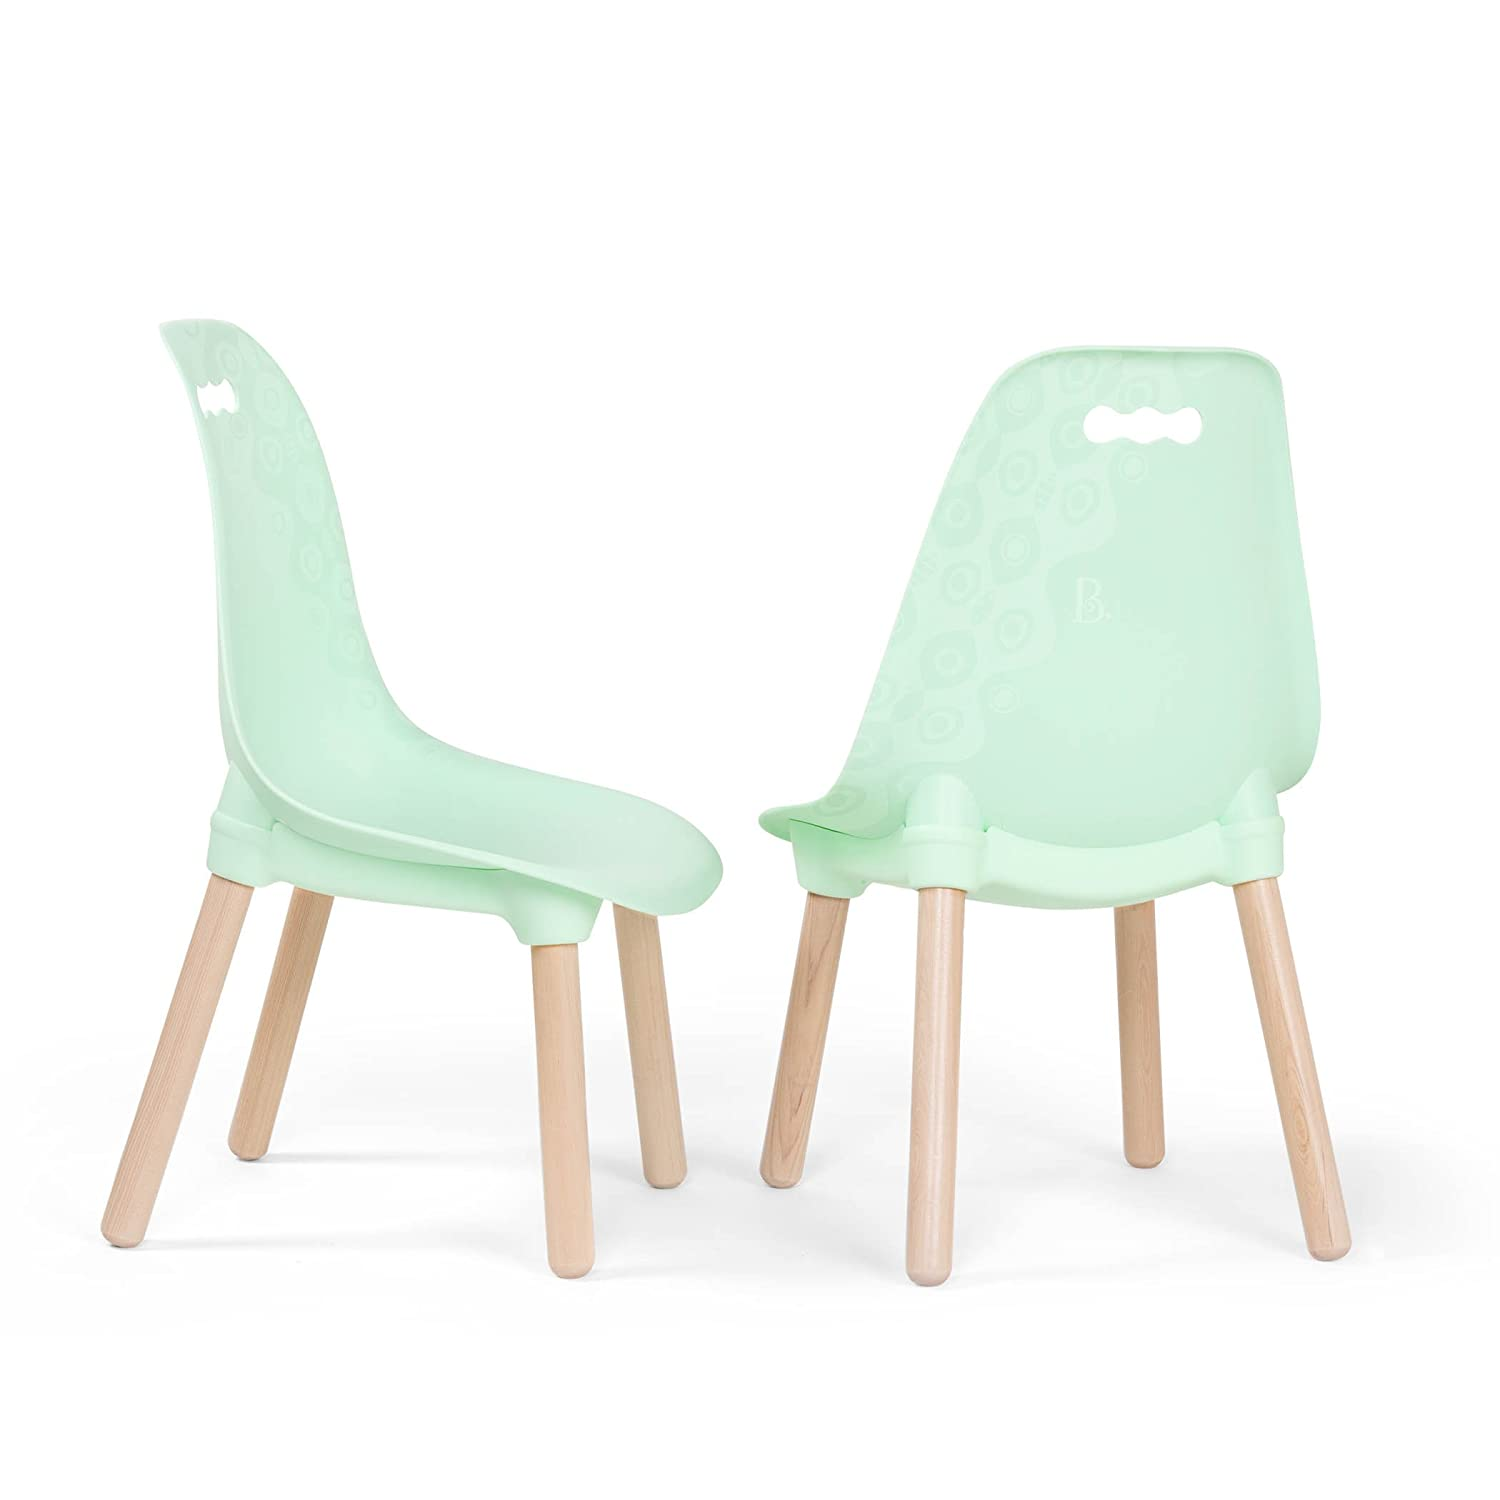 Kid-Century Modern: Trendy Toddler Chair Set of Two Kids Chairs Mint Branford LTD BX1634Z spaces by Battat B Kids Furniture Set for Toddlers and Kids